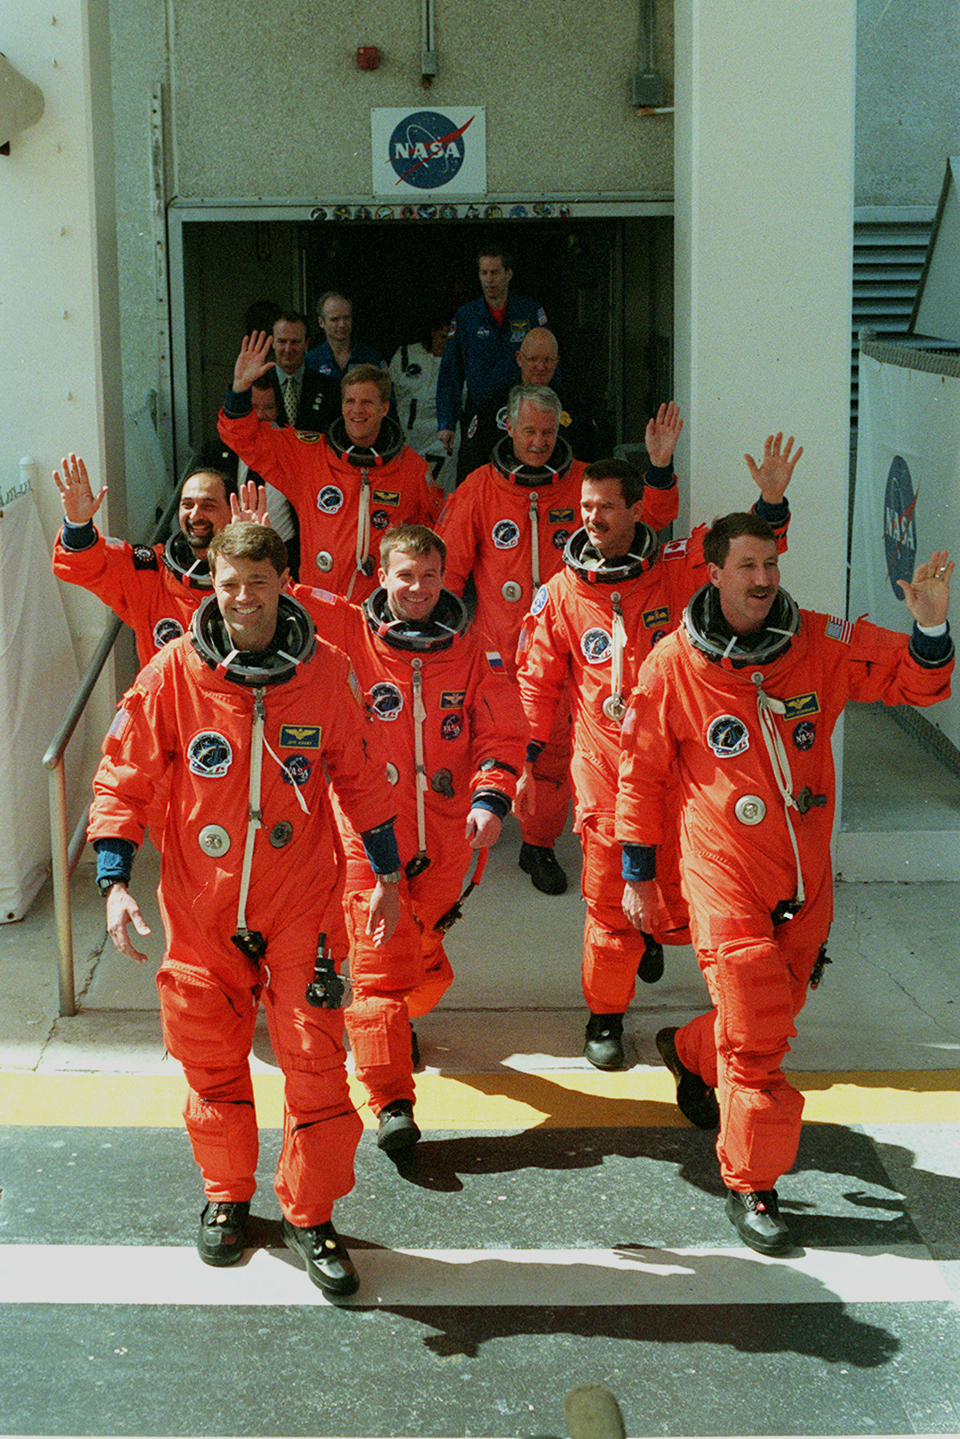 Chris (right, second from front) and the STS-100 crew prepare to launch for an 11-day mission to the ISS, 2001. Photo: NASA